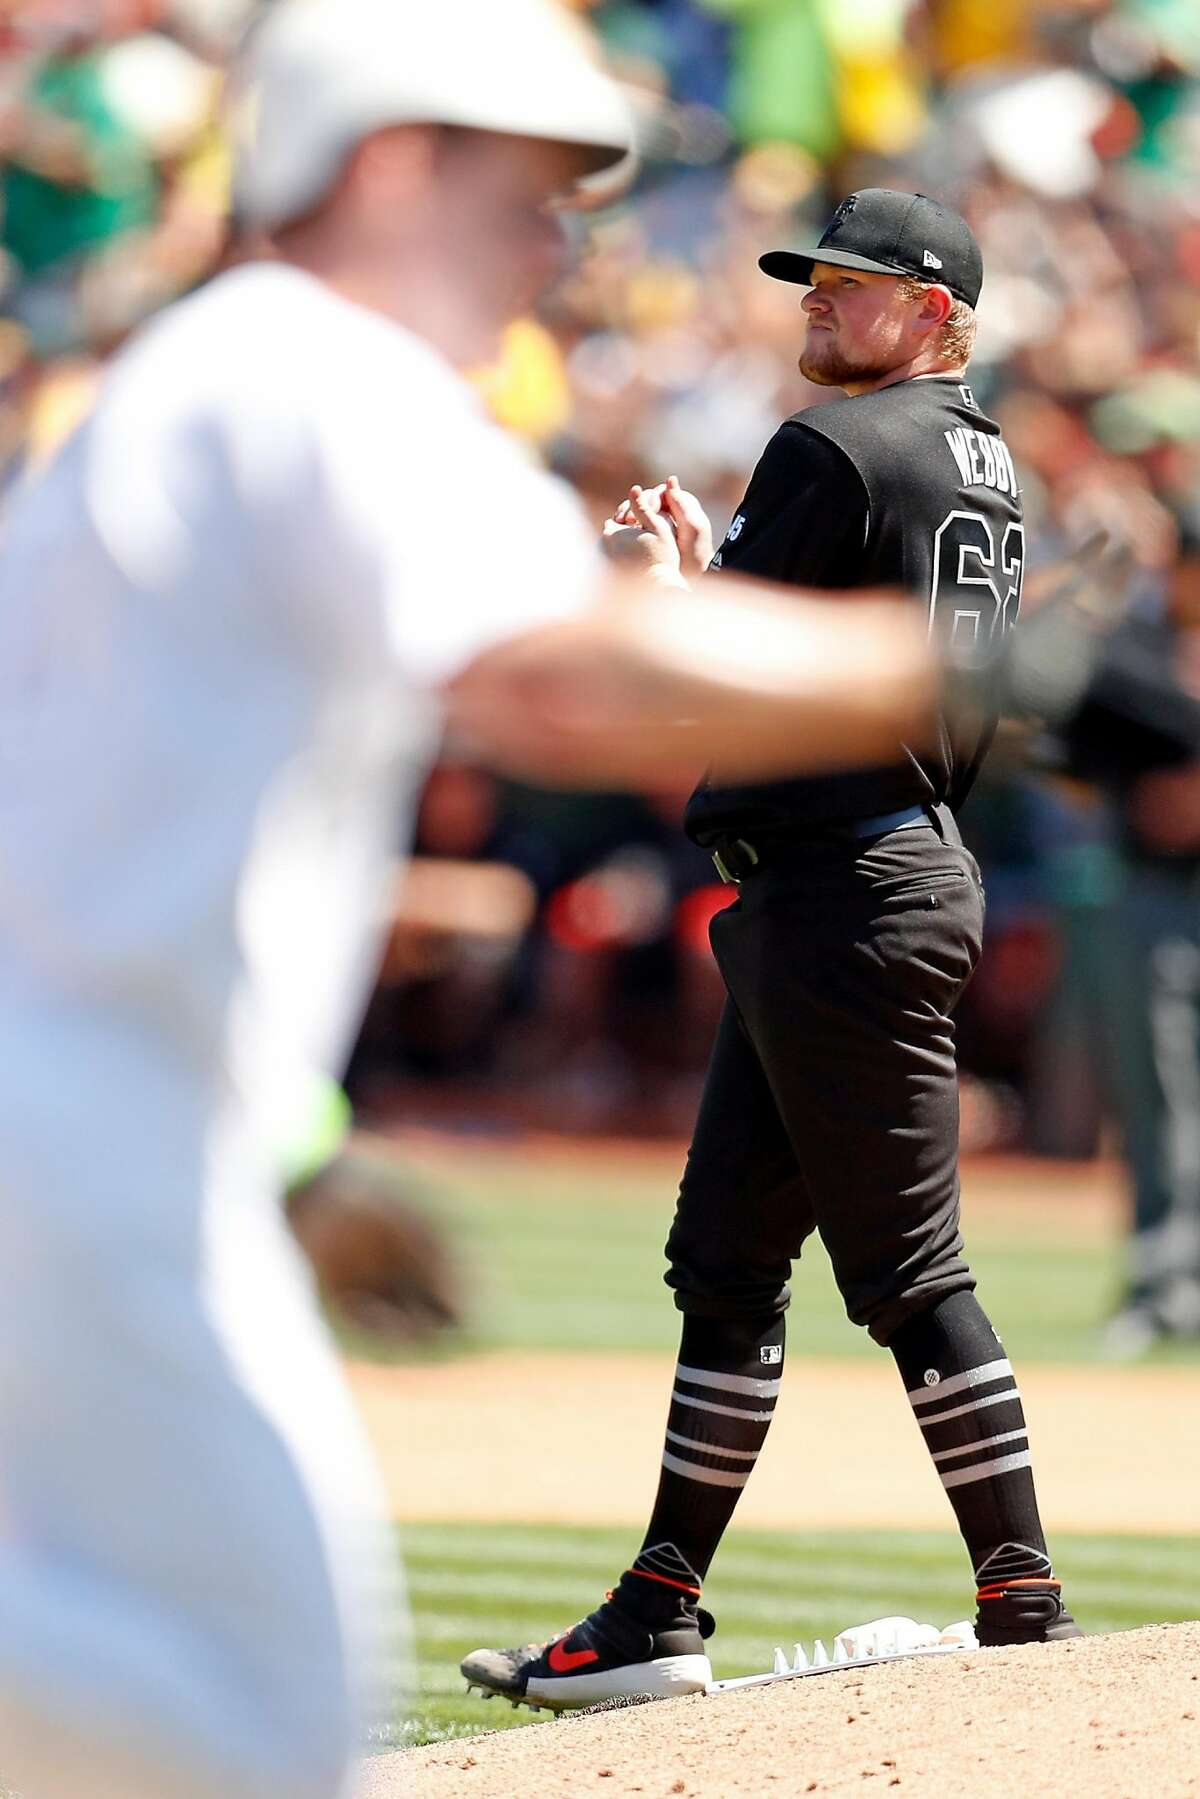 San Francisco Giants' starting pitcher Logan Webb looks away in the 4th inning as Oakland Athletics' Mark Canha rounds the bases after his second solo home run of the game during MLB game at Oakland Coliseum in Oakland, Calif., on Sunday, August 25, 2019.